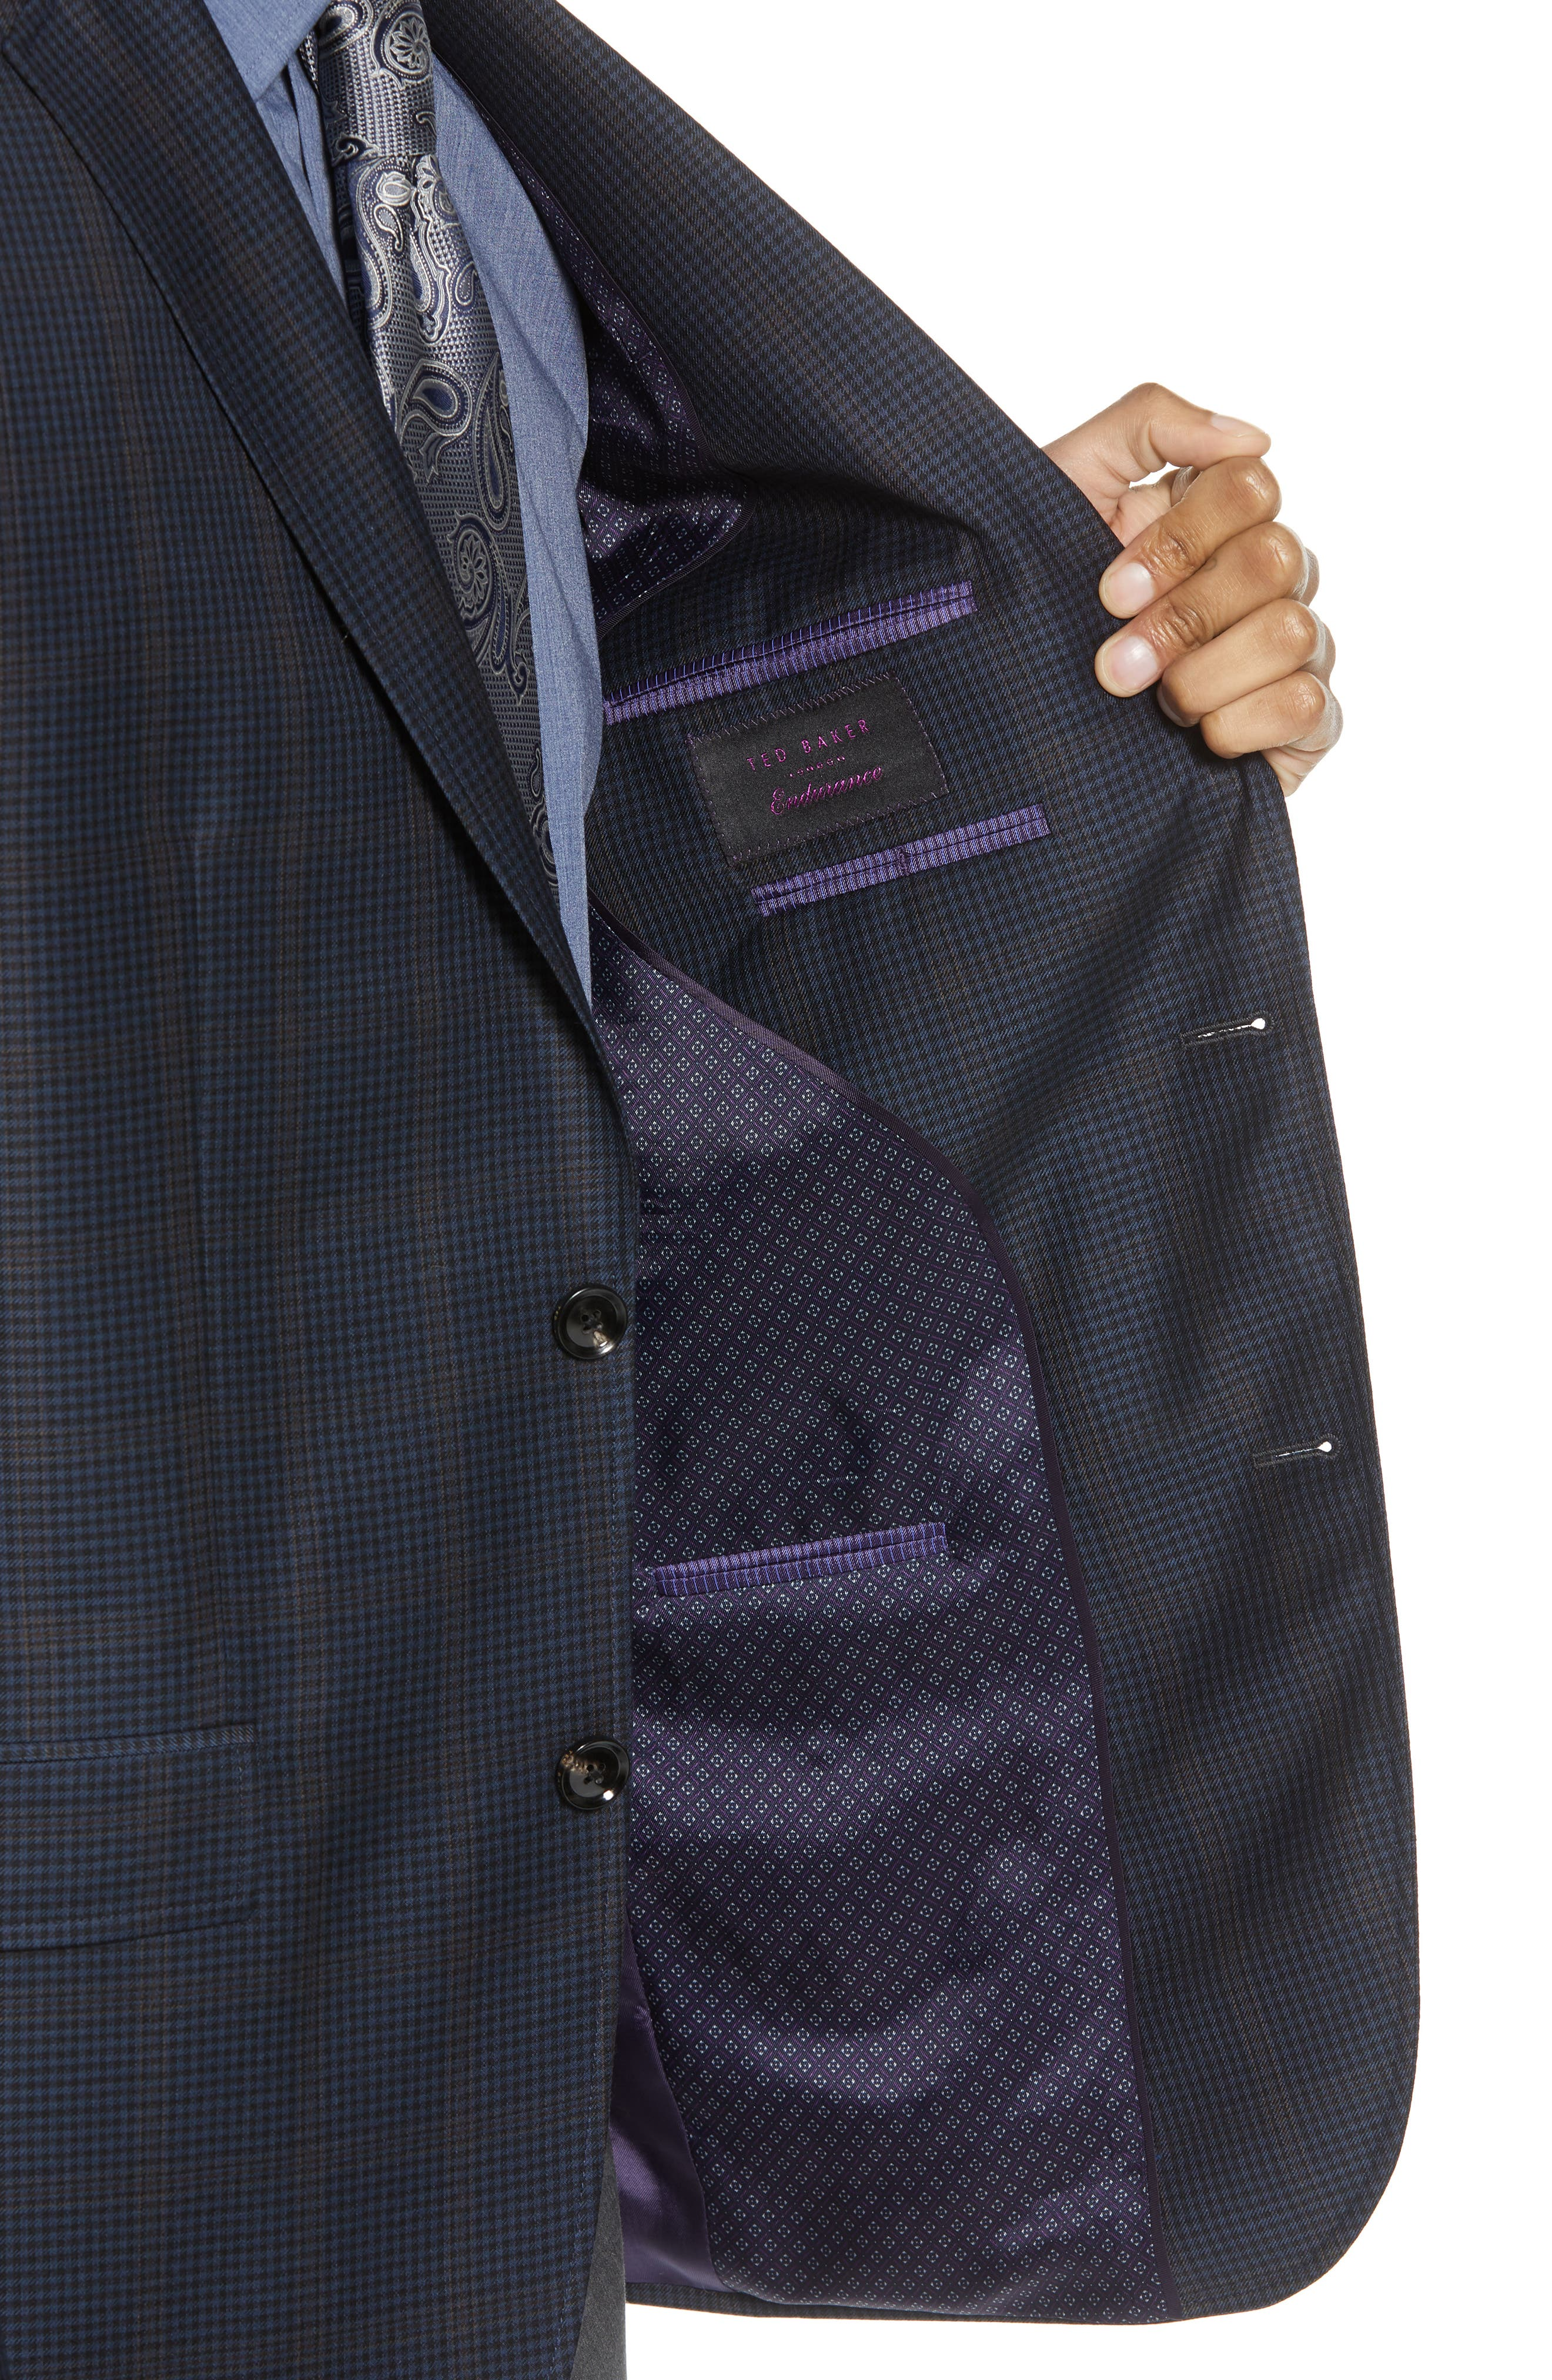 Jay Trim Fit Houndstooth Wool Sport Coat,                             Alternate thumbnail 4, color,